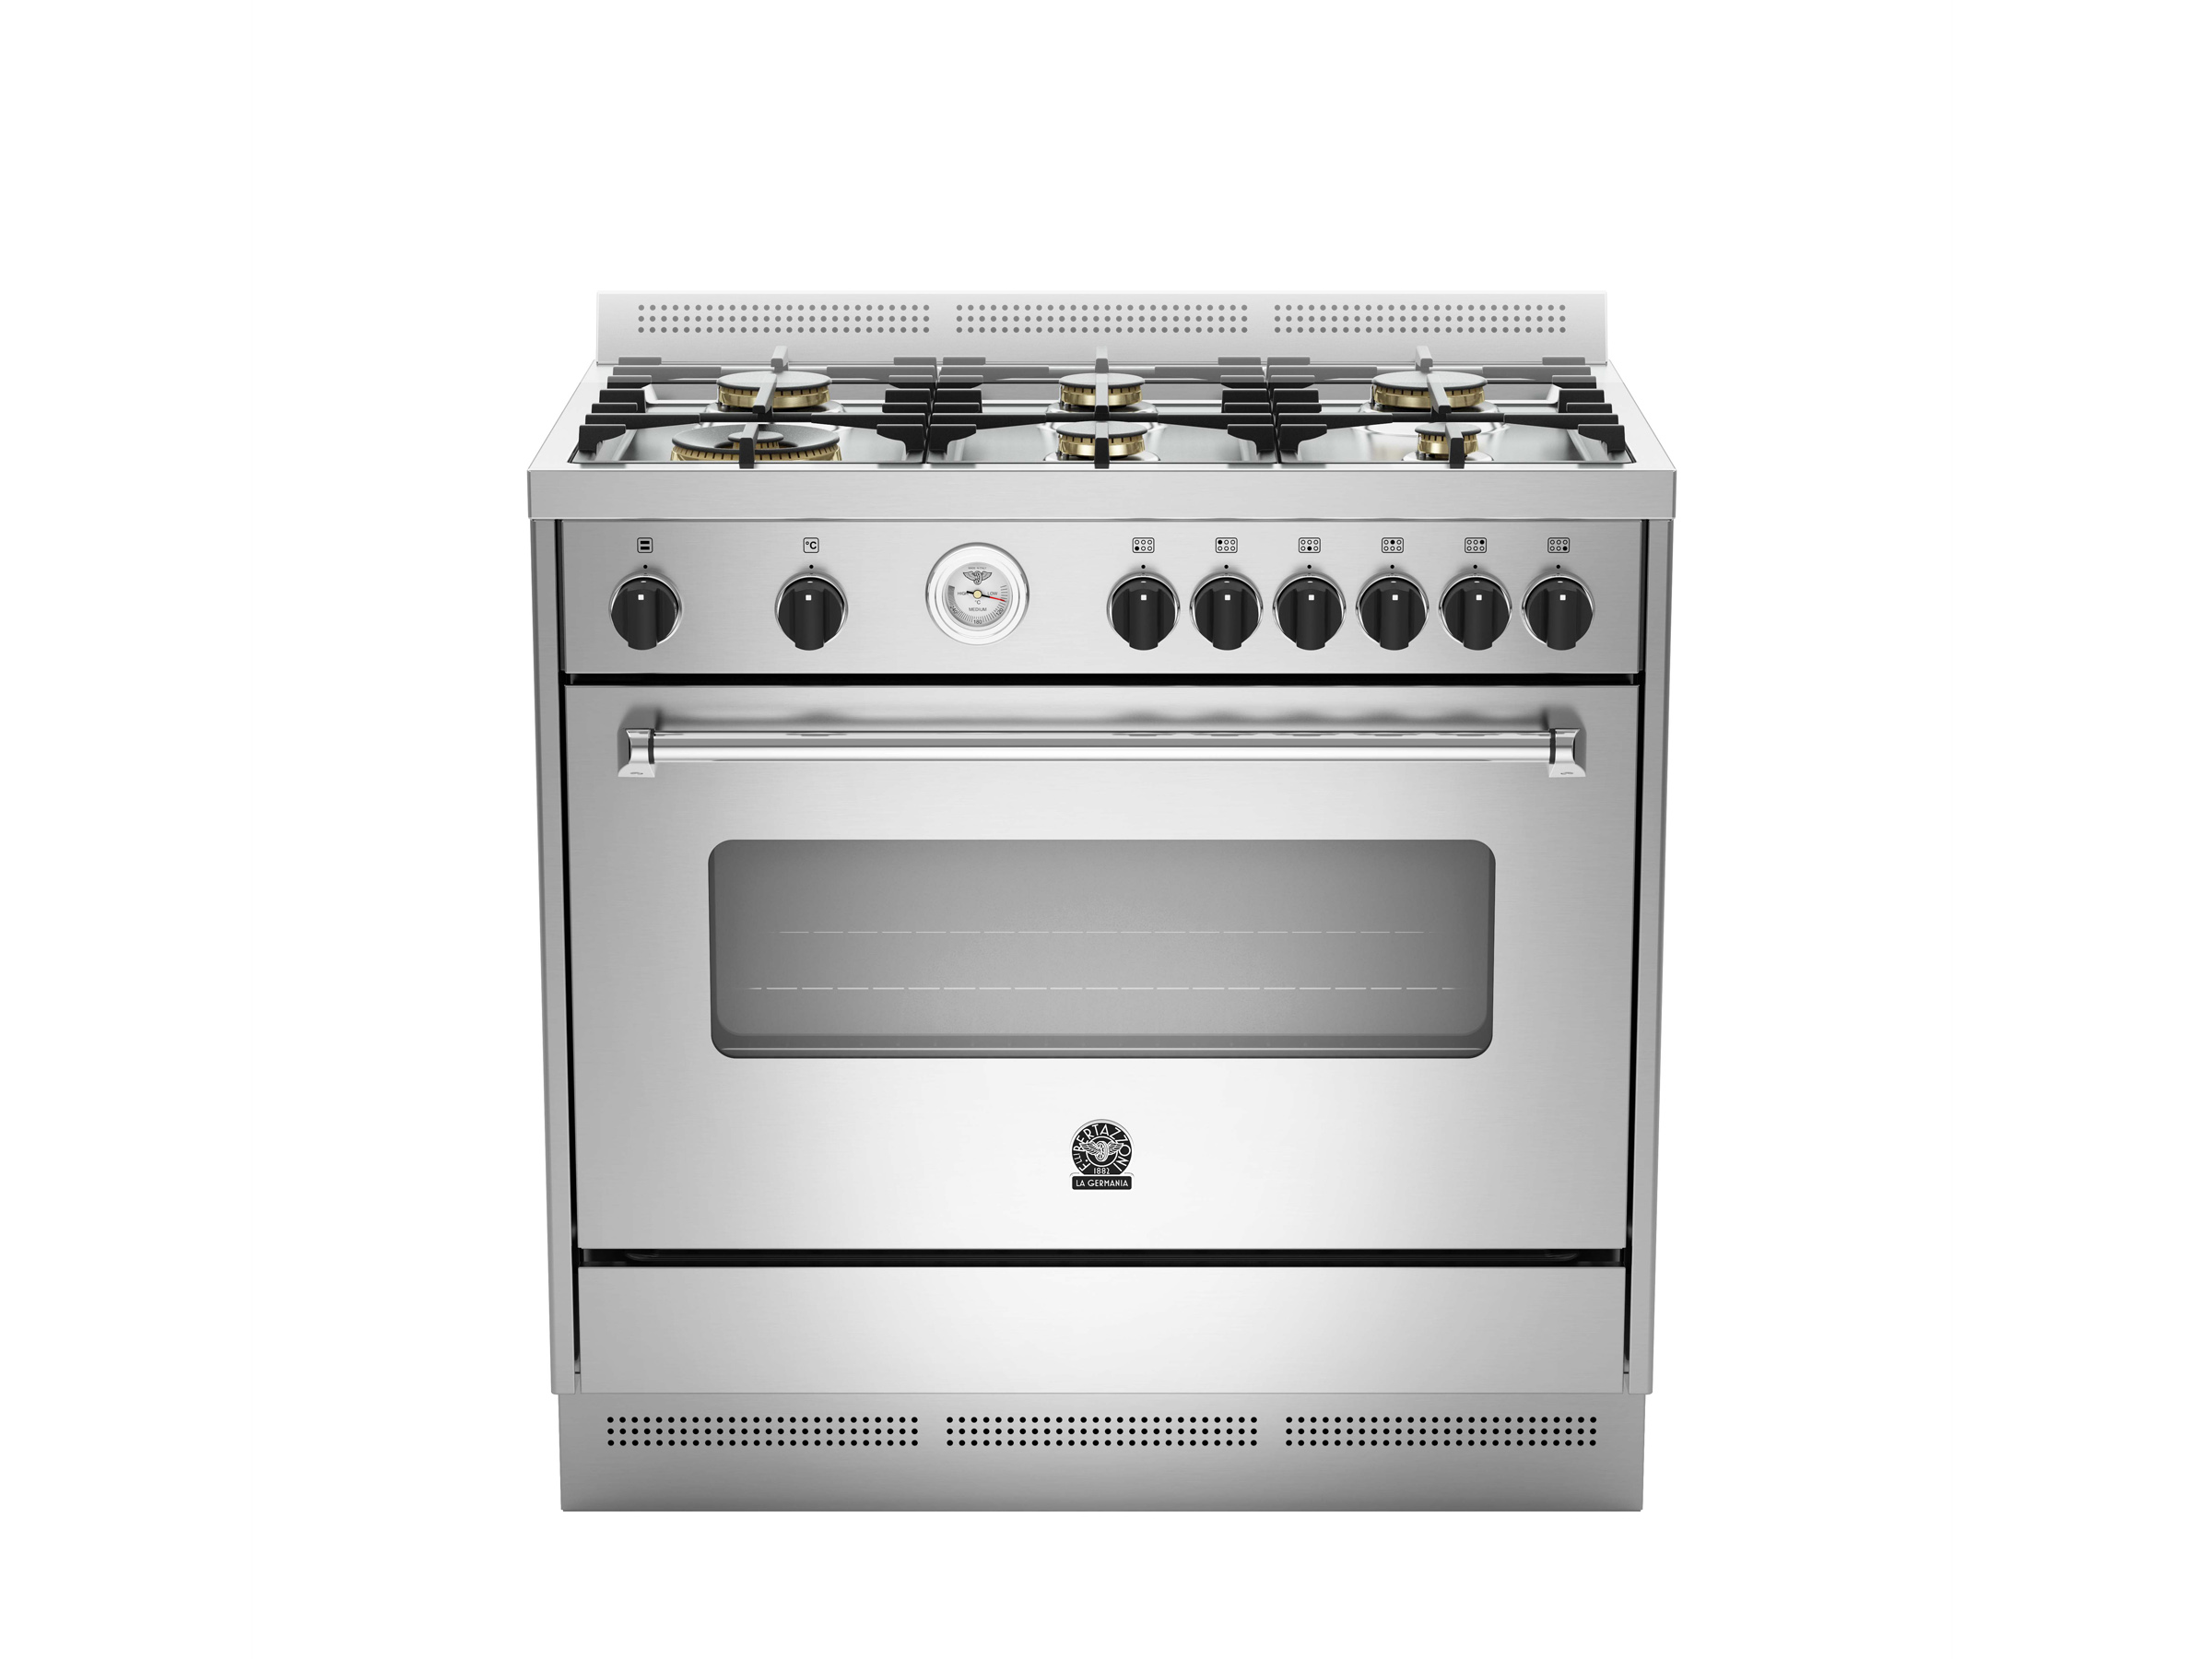 90 6-Brass Burners Gas Oven AX | Bertazzoni La Germania - Stainless